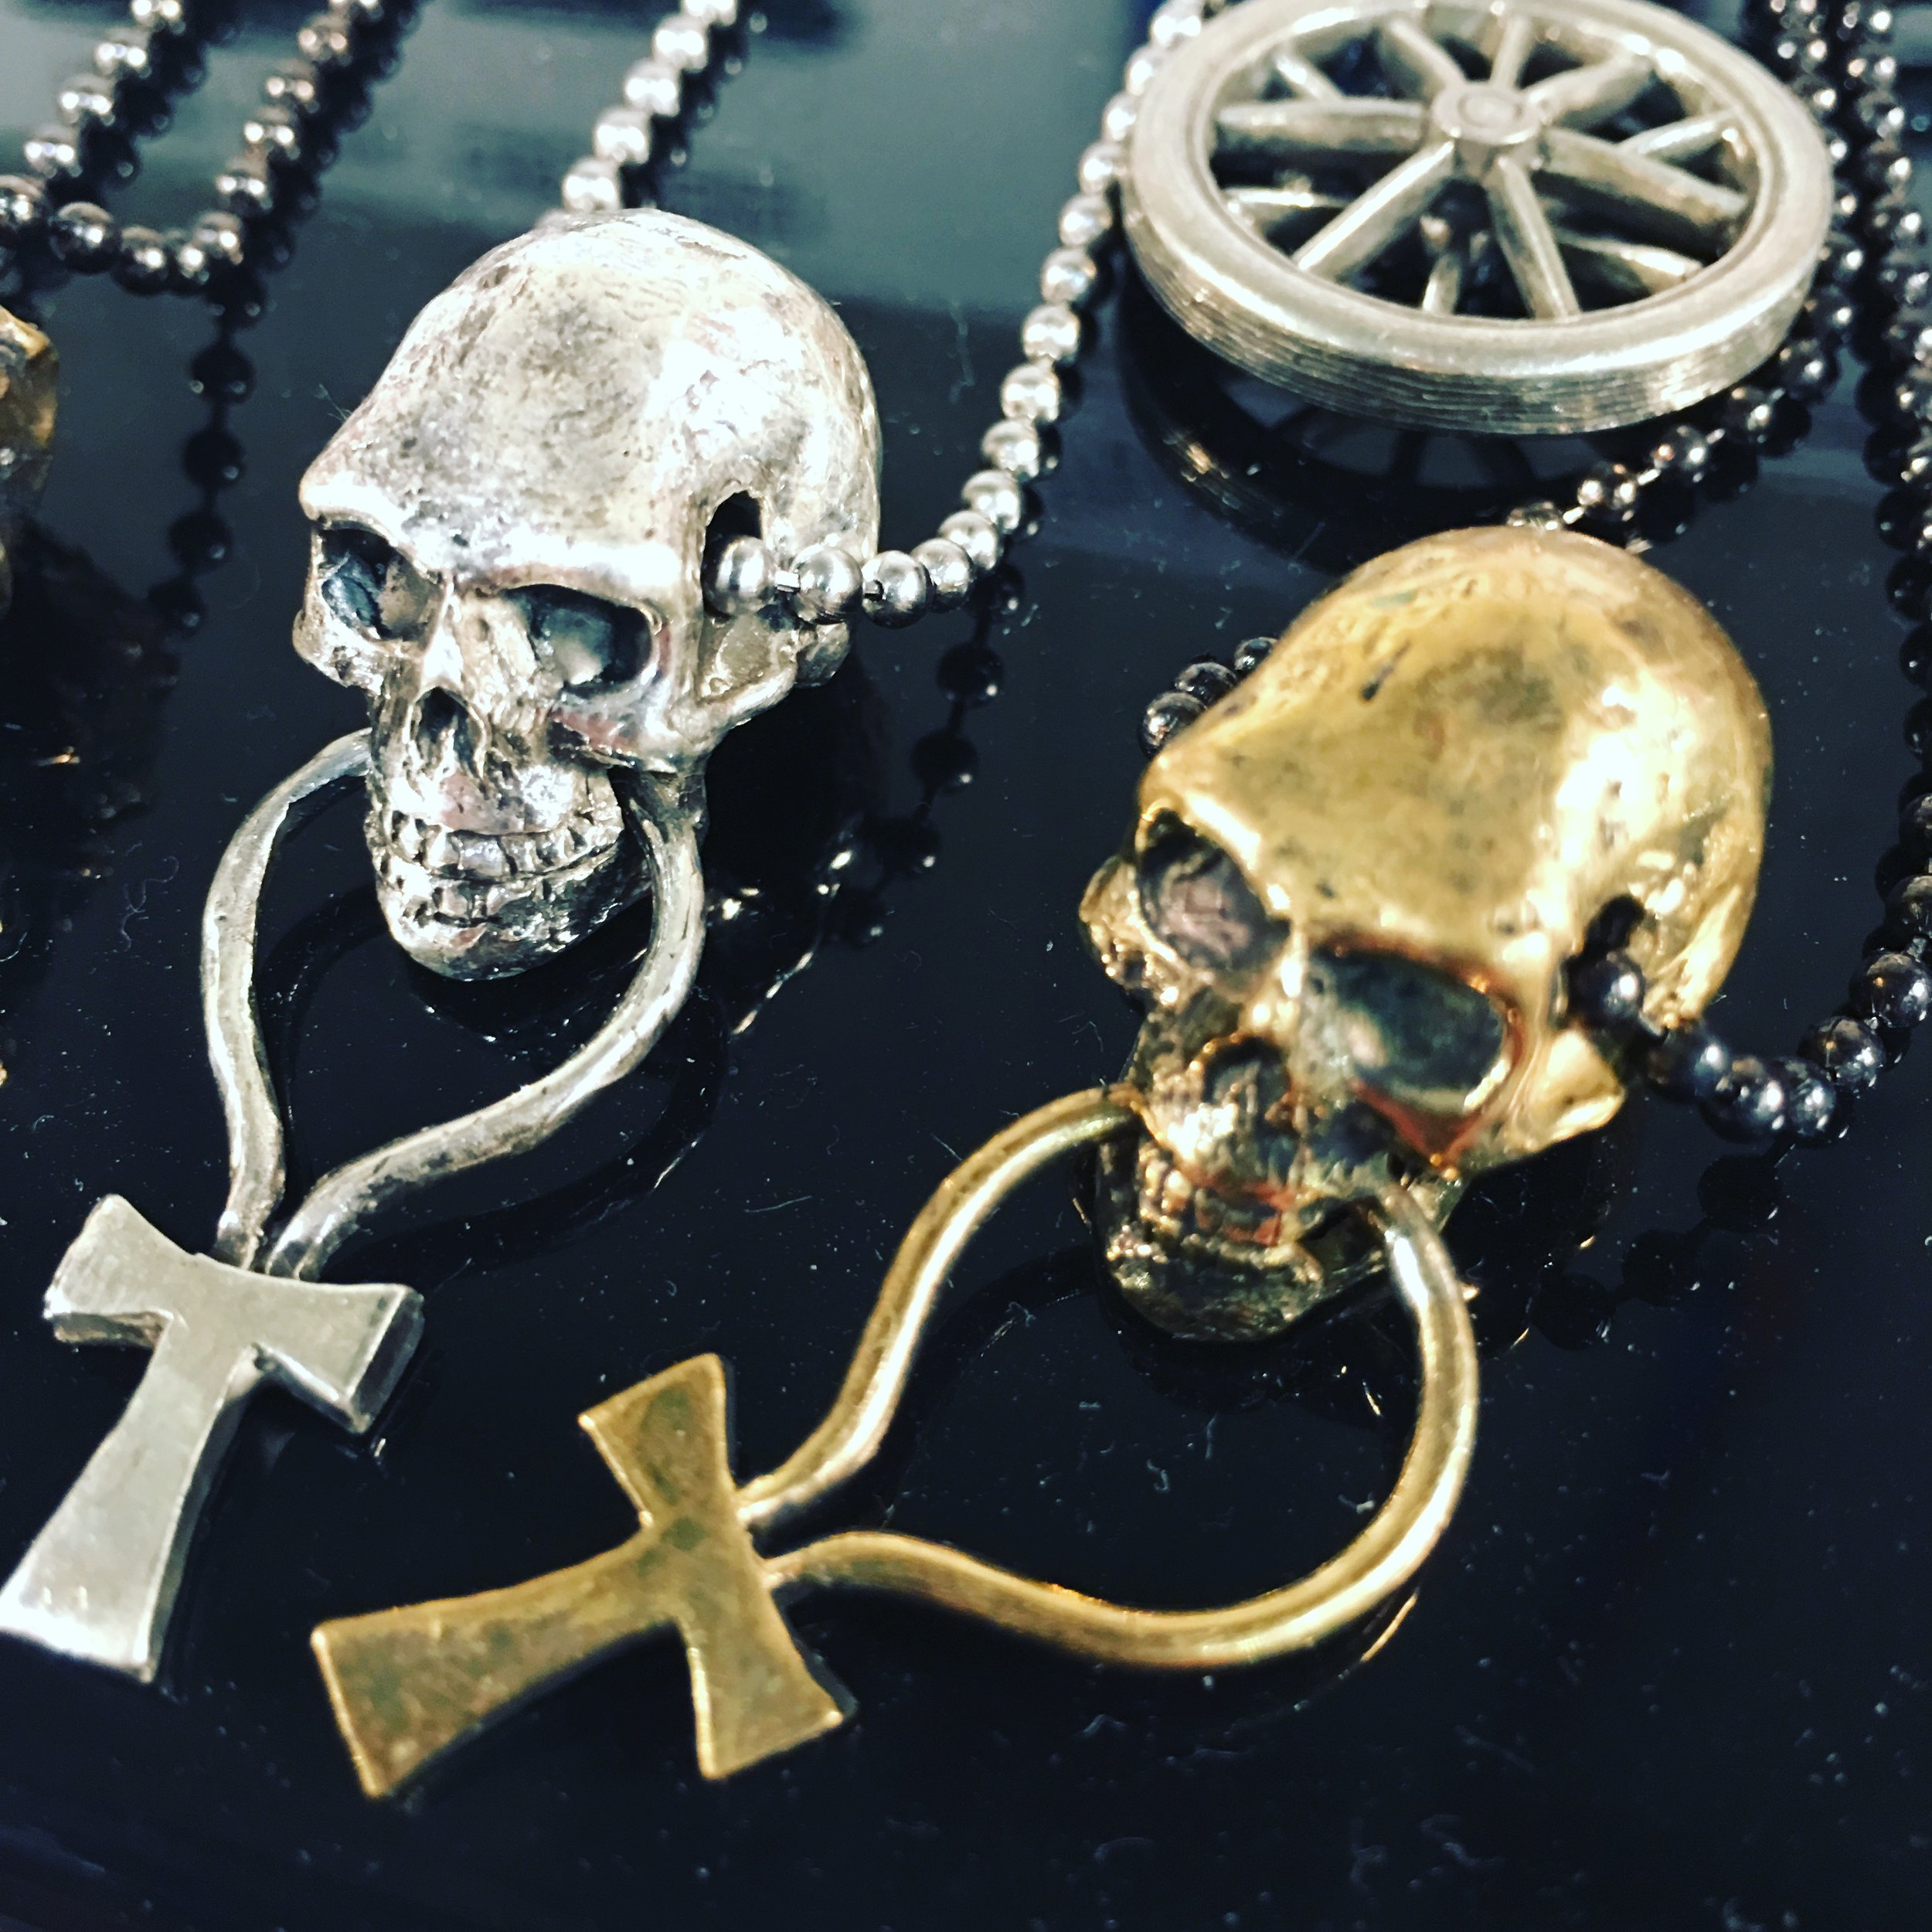 Jewelry Designed and made in USA - Jac Zagoory is an accomplished designer, jeweler, welder, and metal fabricator.His focus and passion are designs that ease challenges of daily living.